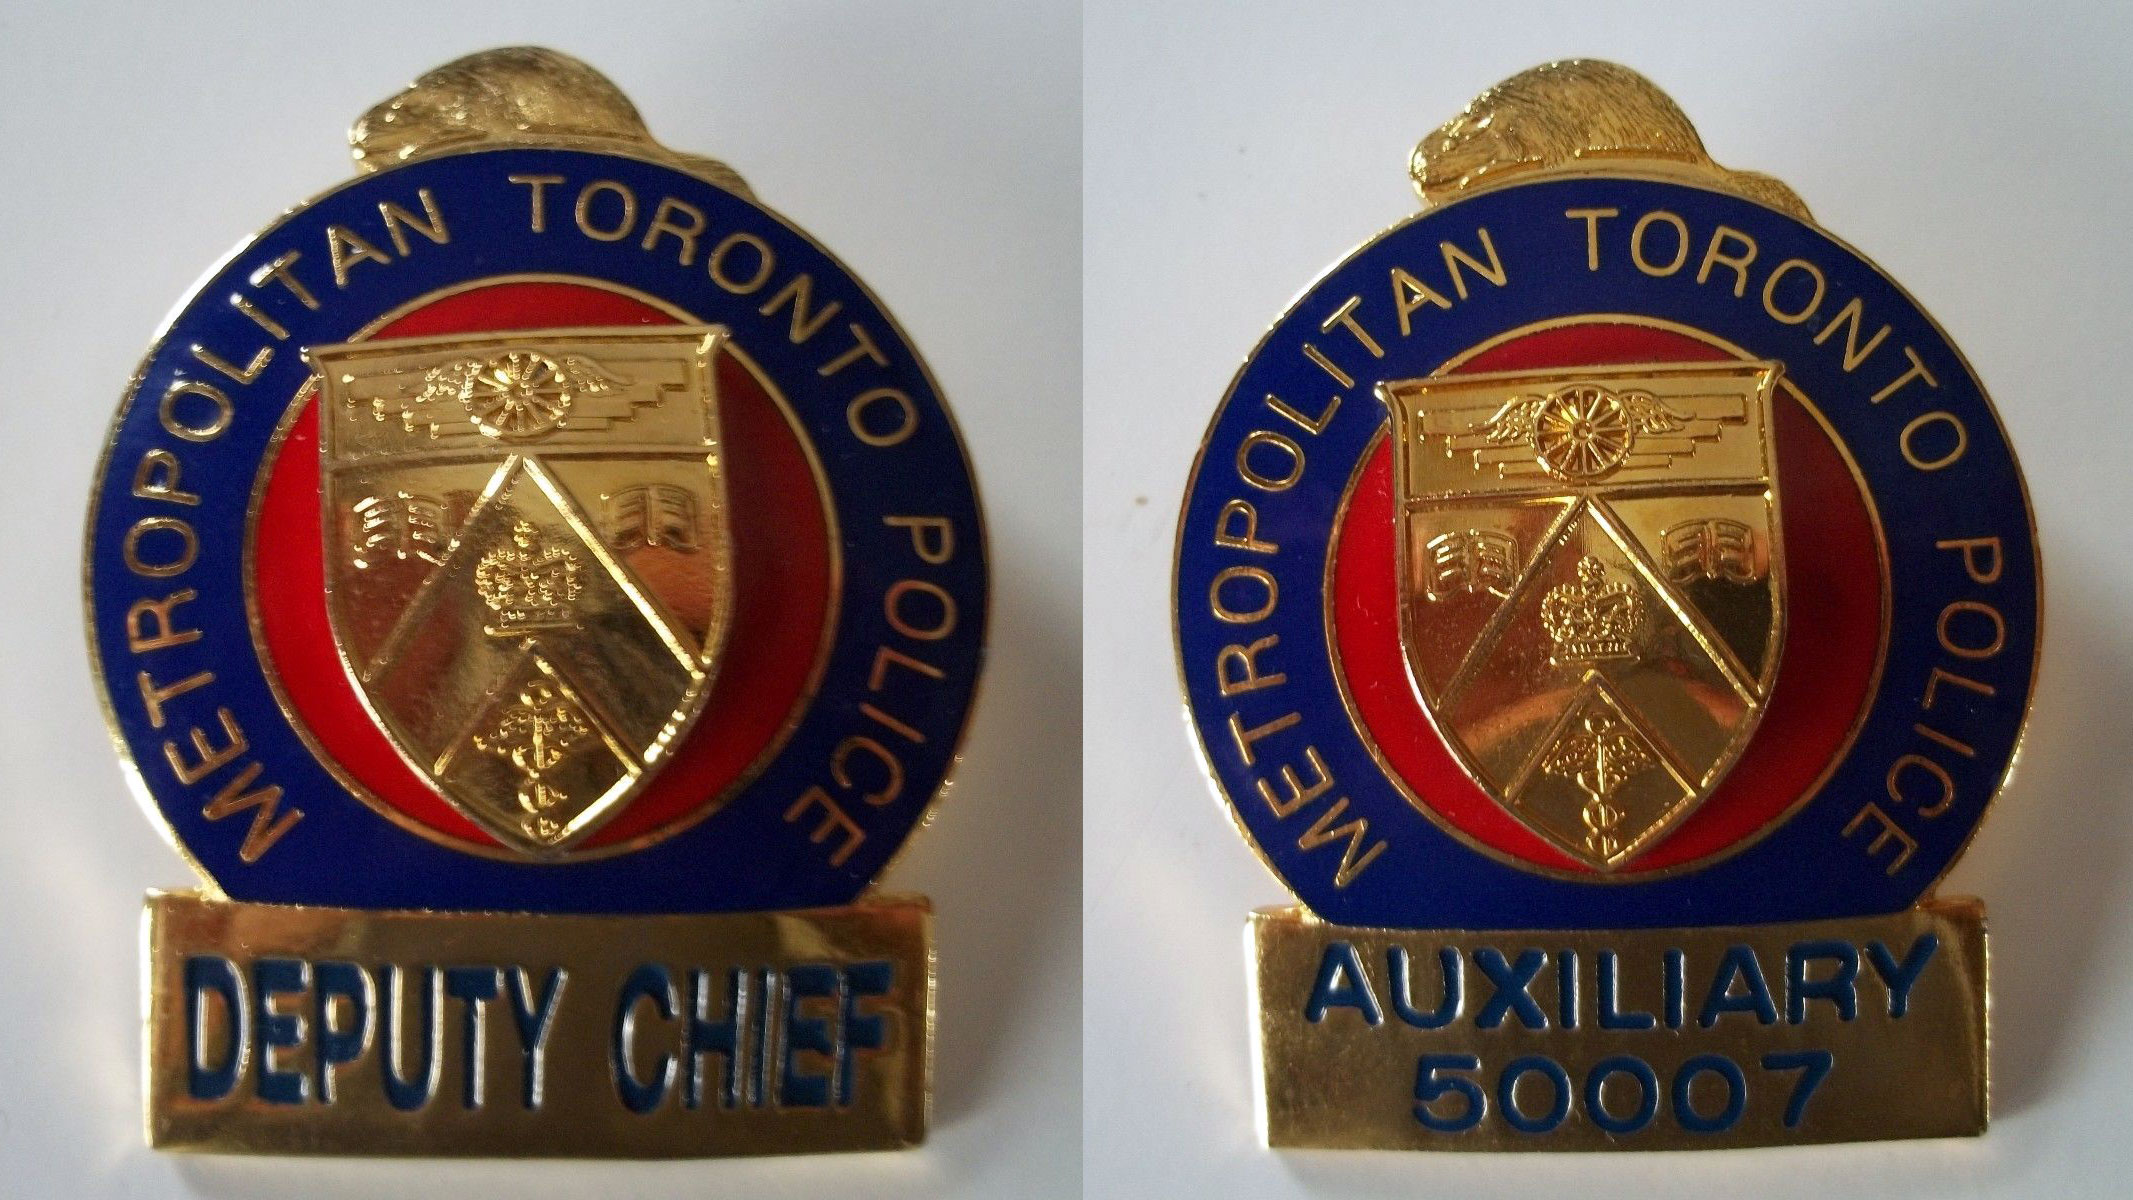 Metropolitan Toronto Police badges for sale on eBay. EBAY